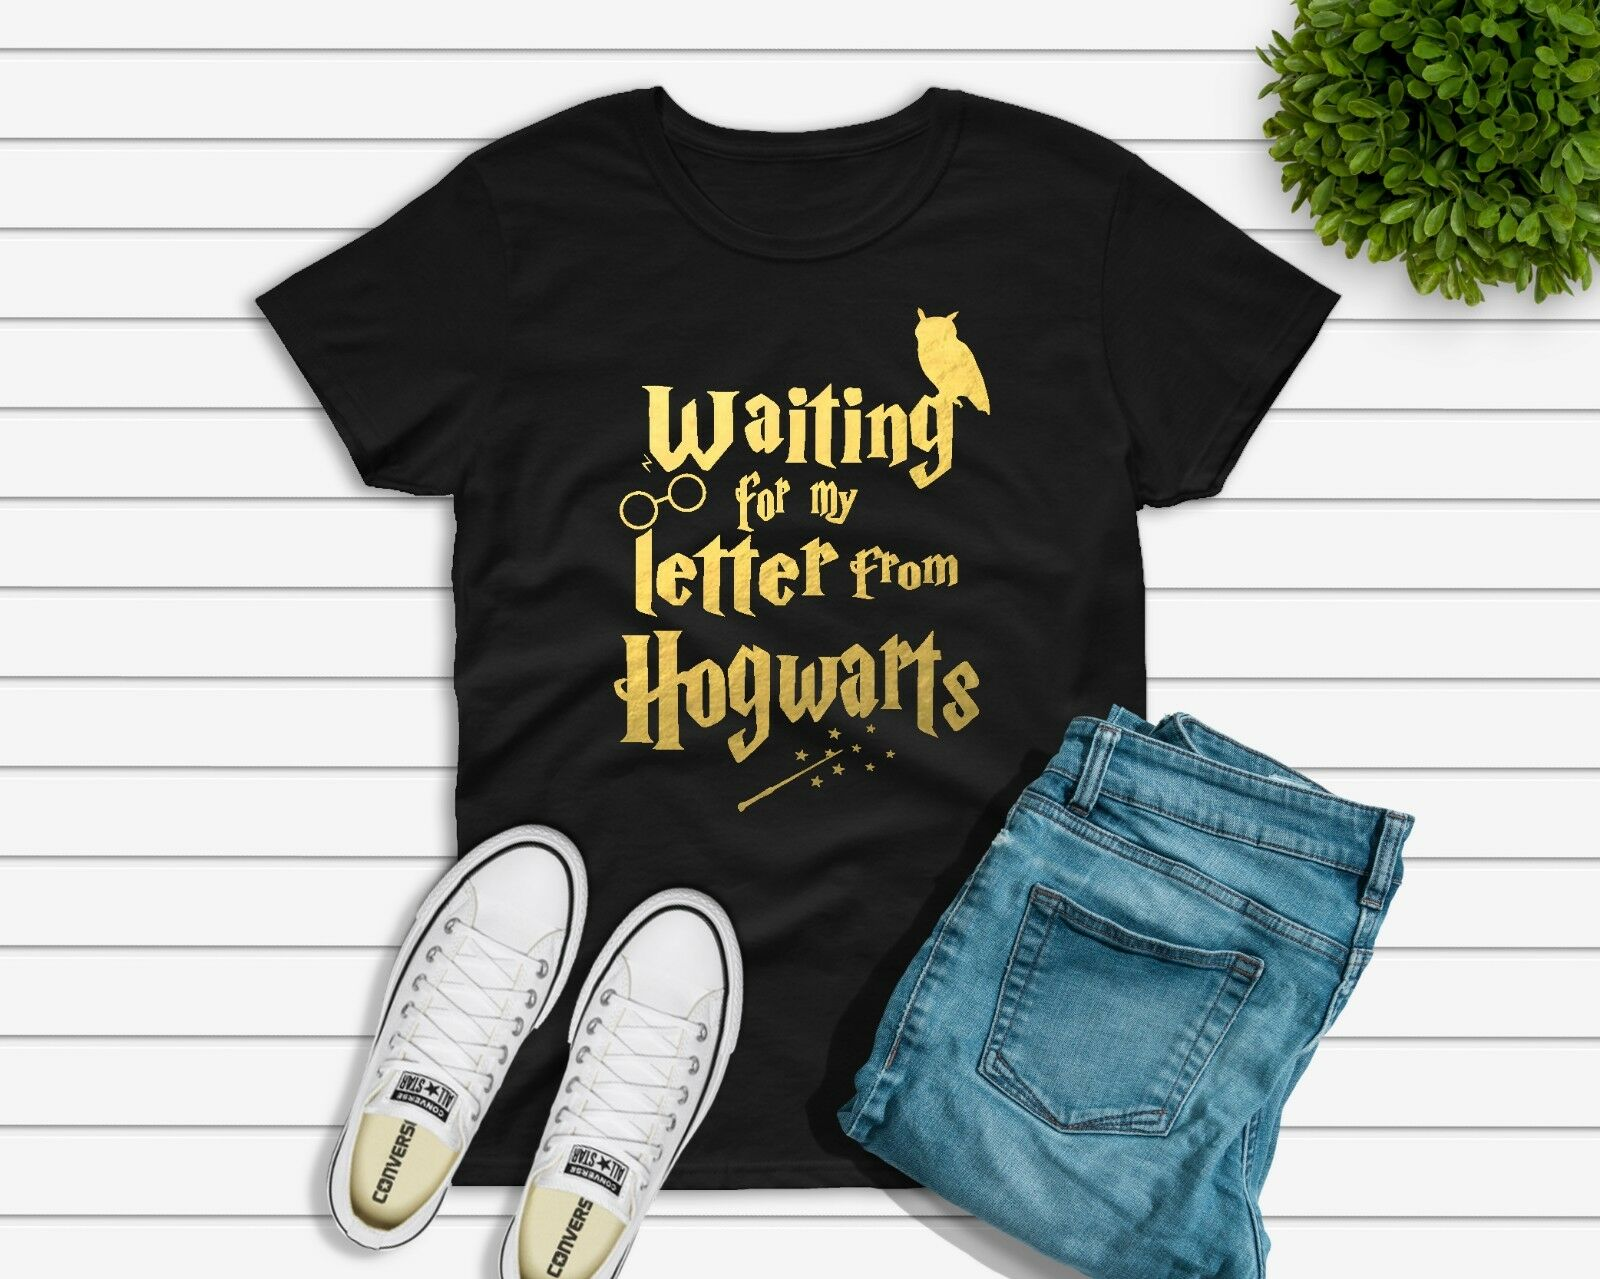 Waiting For My Letter From Hogwarts Tshirts Unisex Womens Childrens HARRY Men Women Unisex Fashion Tshirt Free Shipping